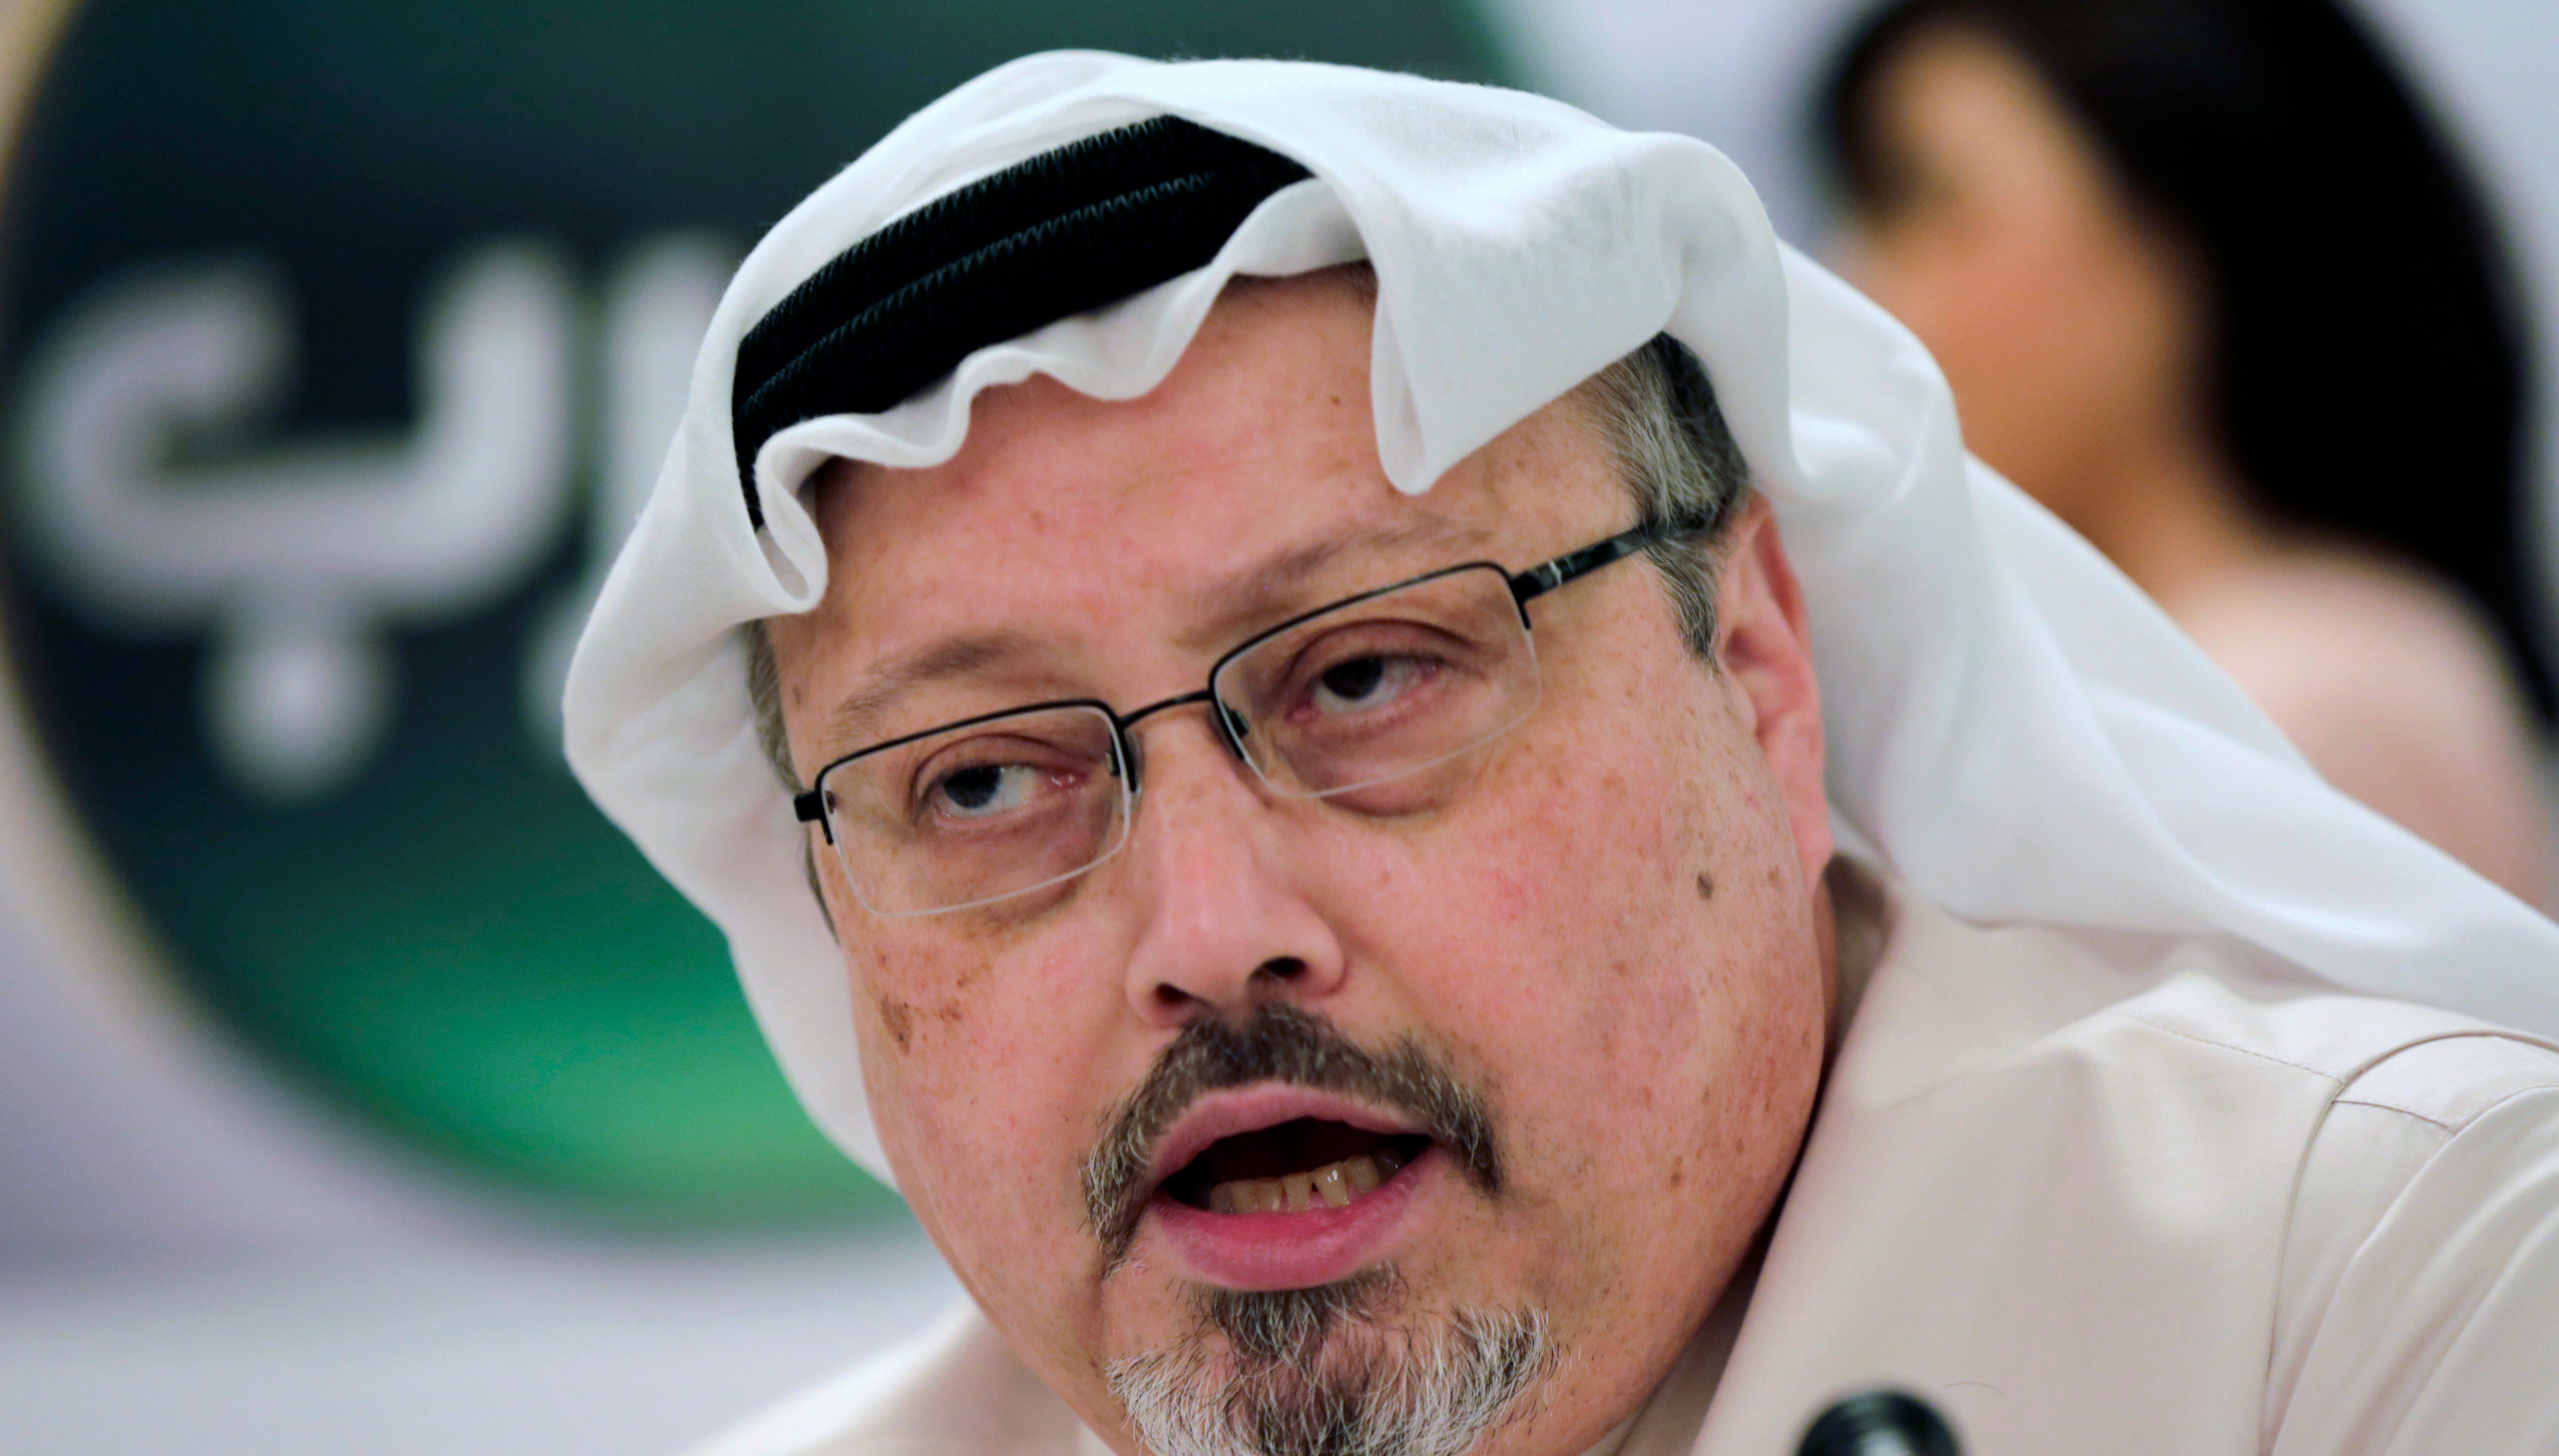 After Jamal Khashoggi, it's time to rethink our role in the Middle East